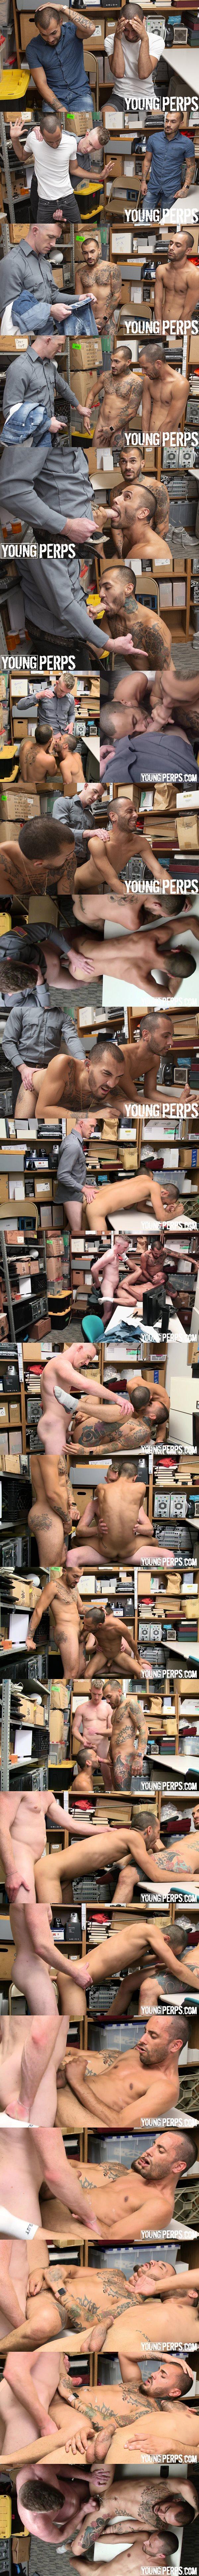 Nick Fitt barebacks sexy latino Matthew Grande and Chance Summerlin in a raw threeway in Case No. 1902054-78 at Youngperps 01